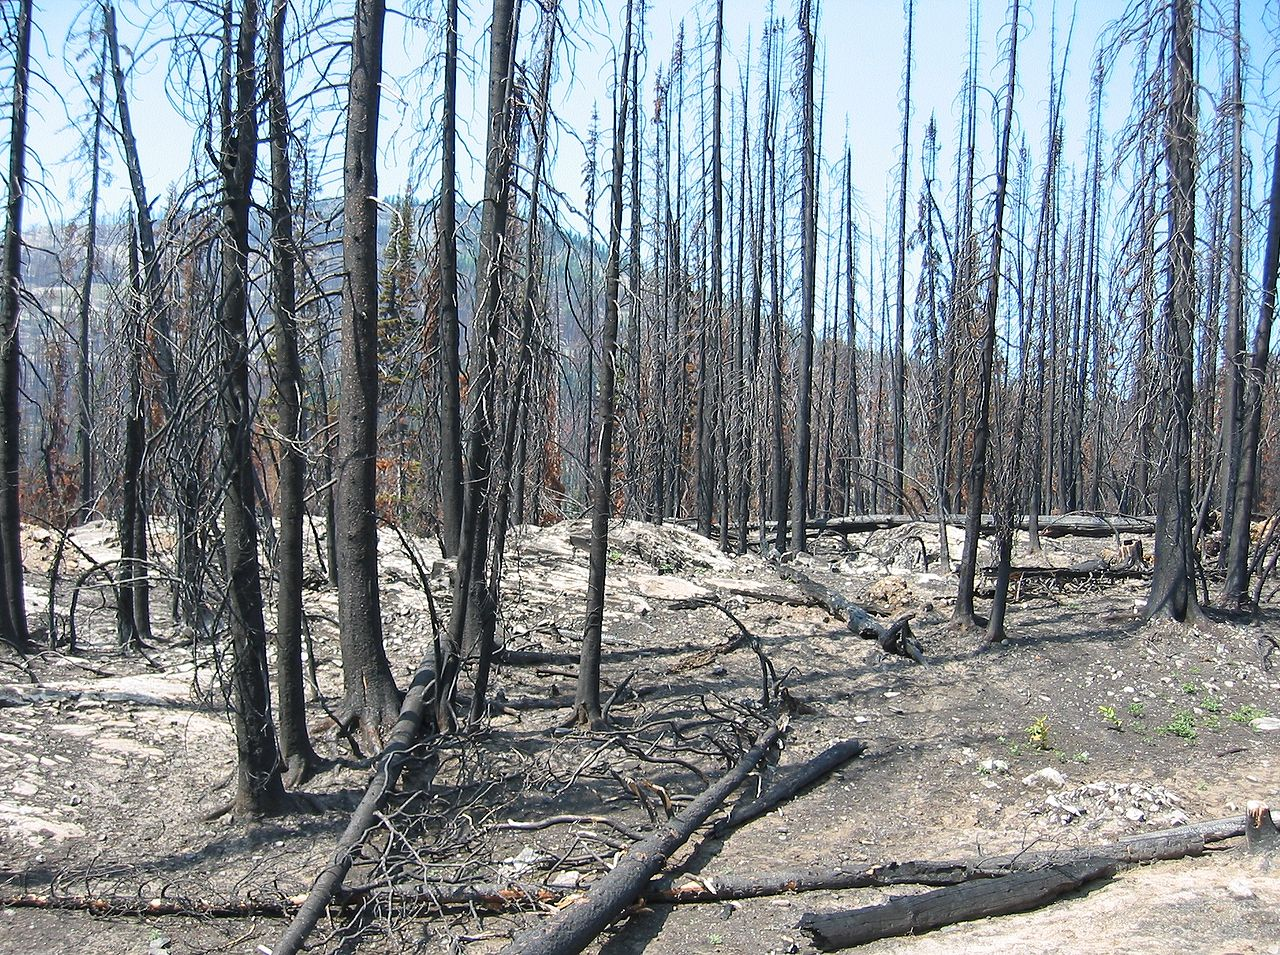 the aftermath of a forest fire. forest fire usually drives forest-dwelling animals away and spread deadly diseases